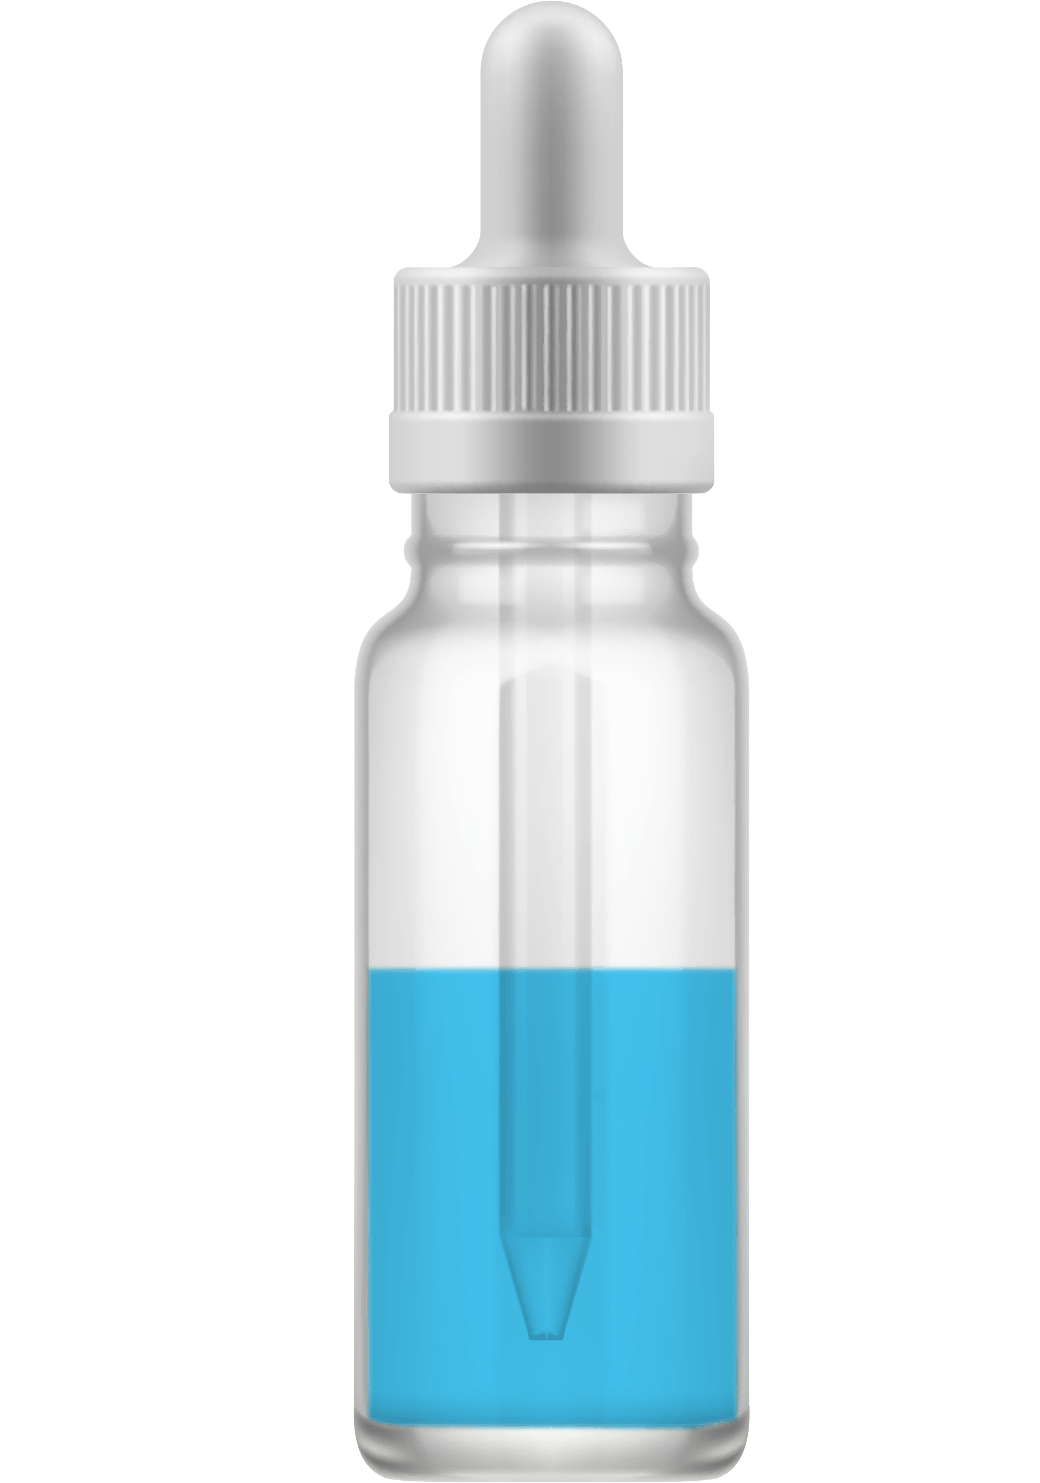 Open pill bottle png. Why do new medicines